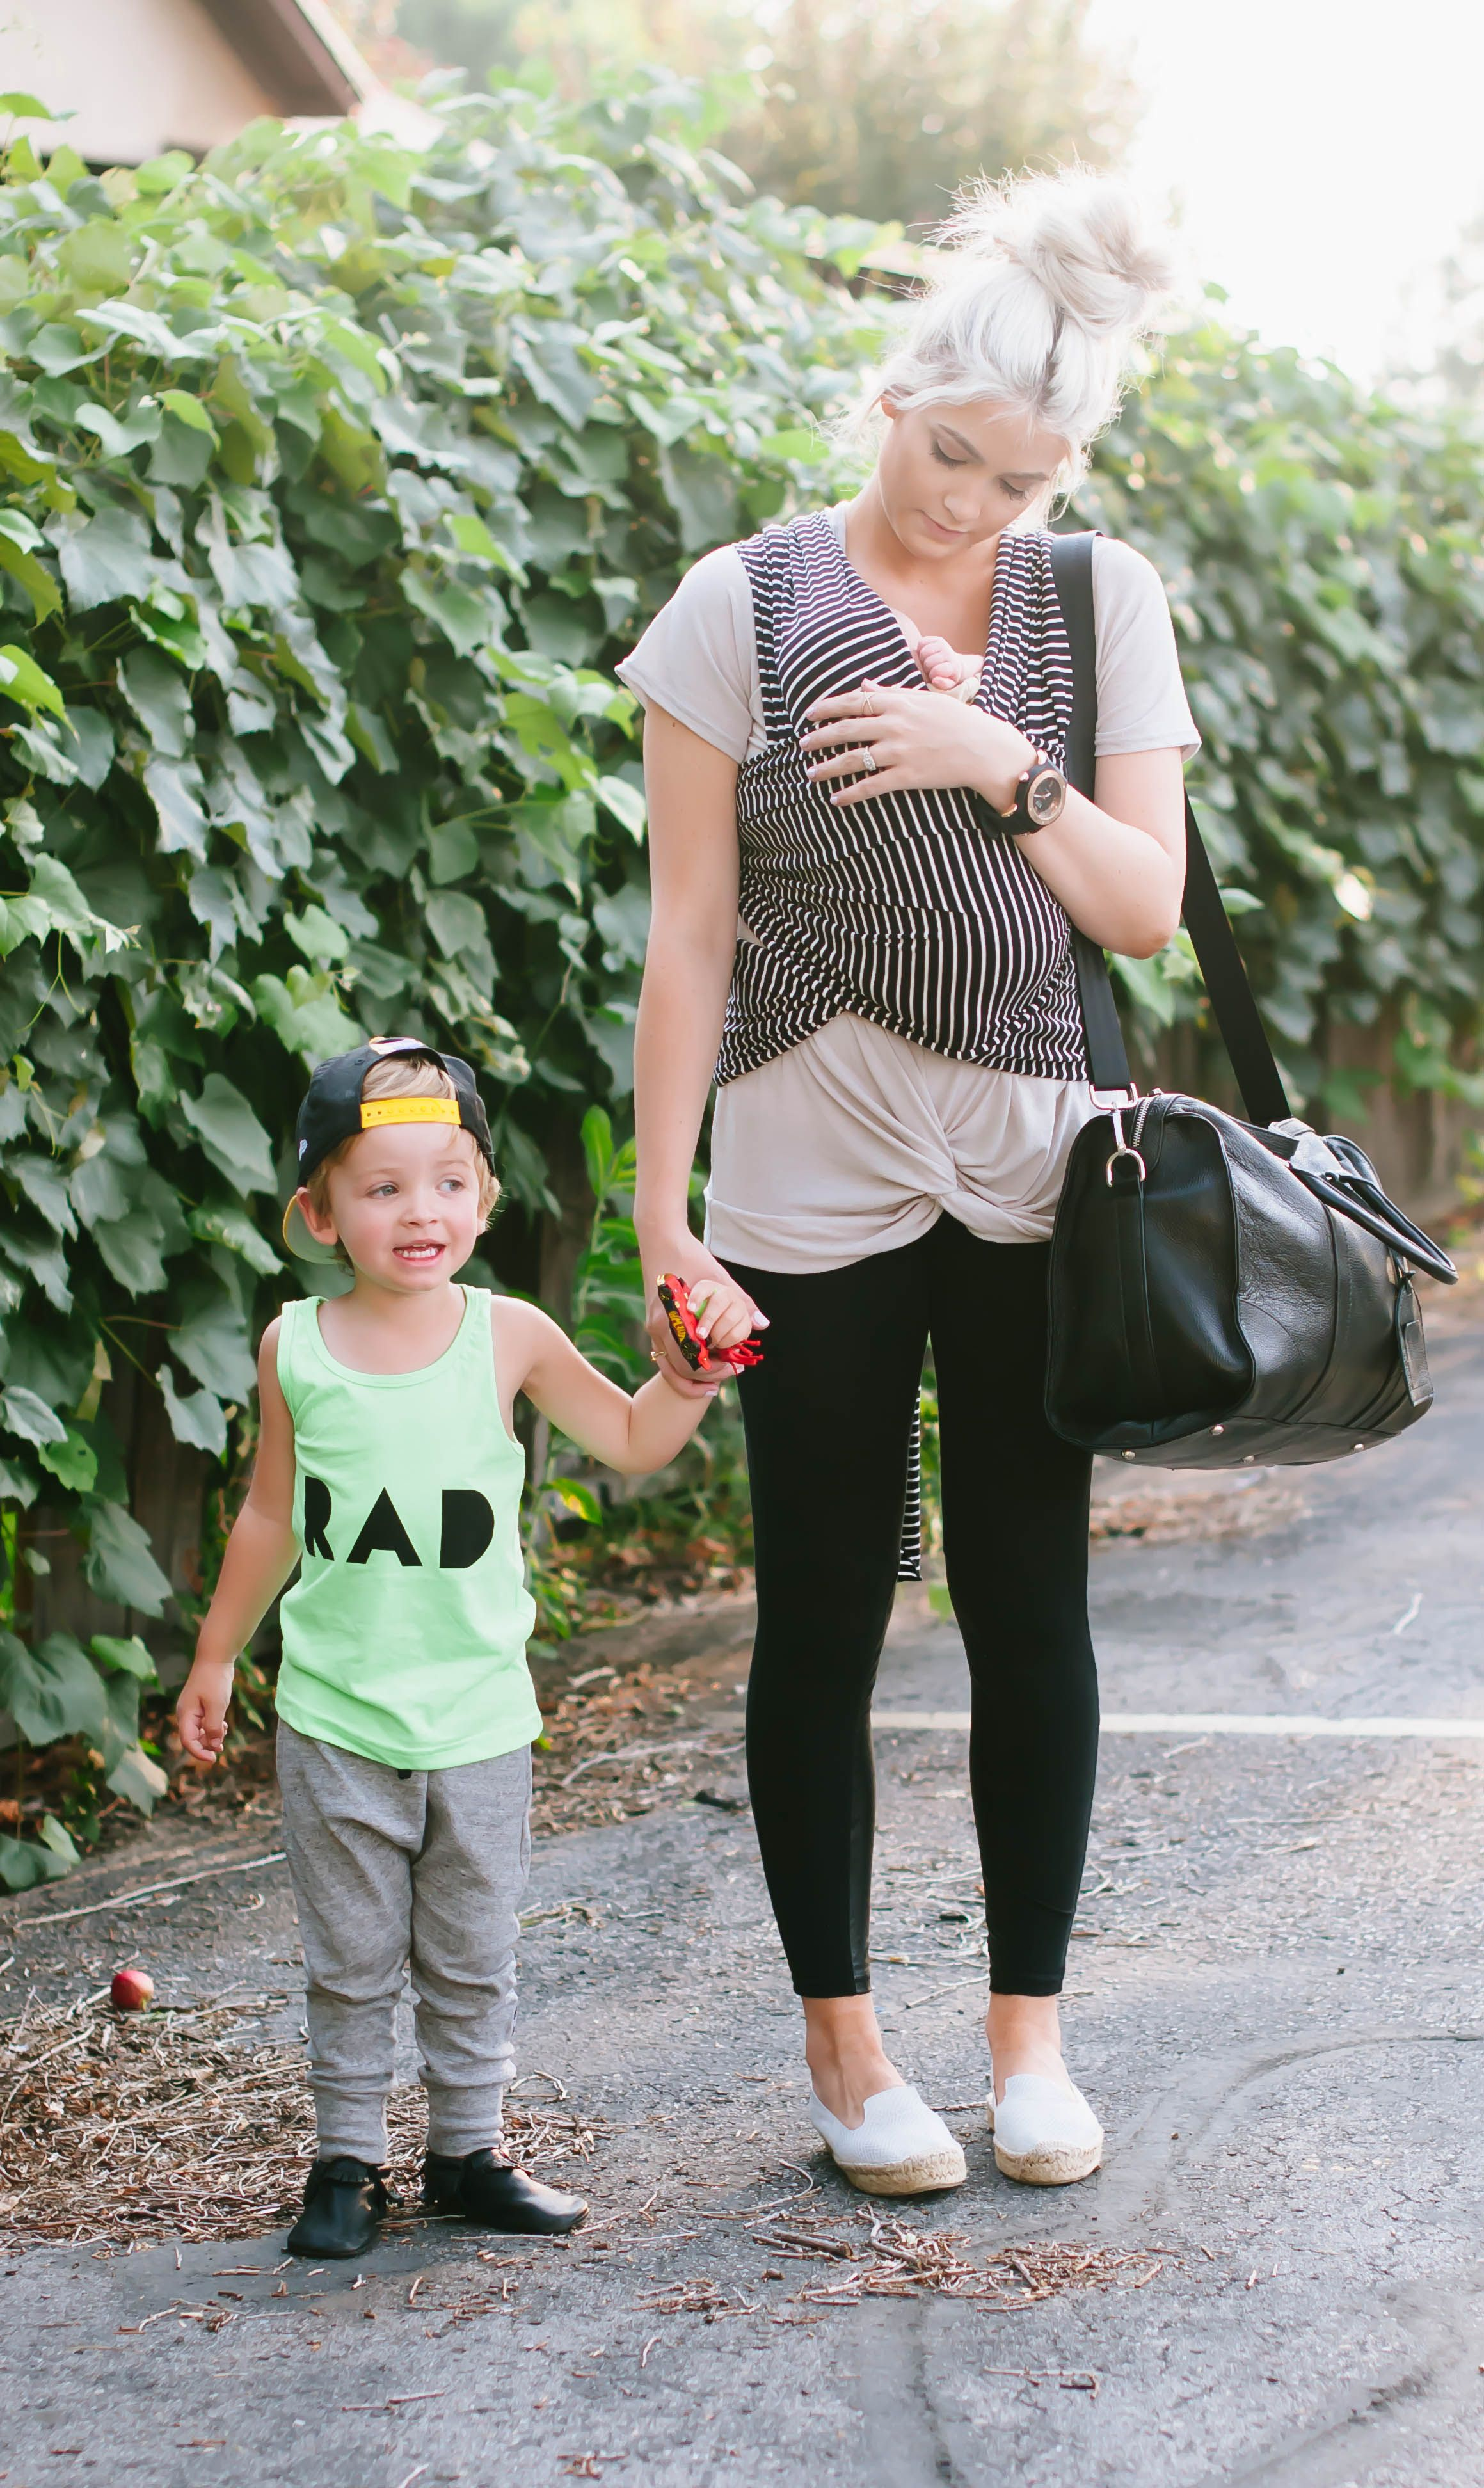 I Love This Mom S Easy Laid Back But Edgy Style I Love The Little